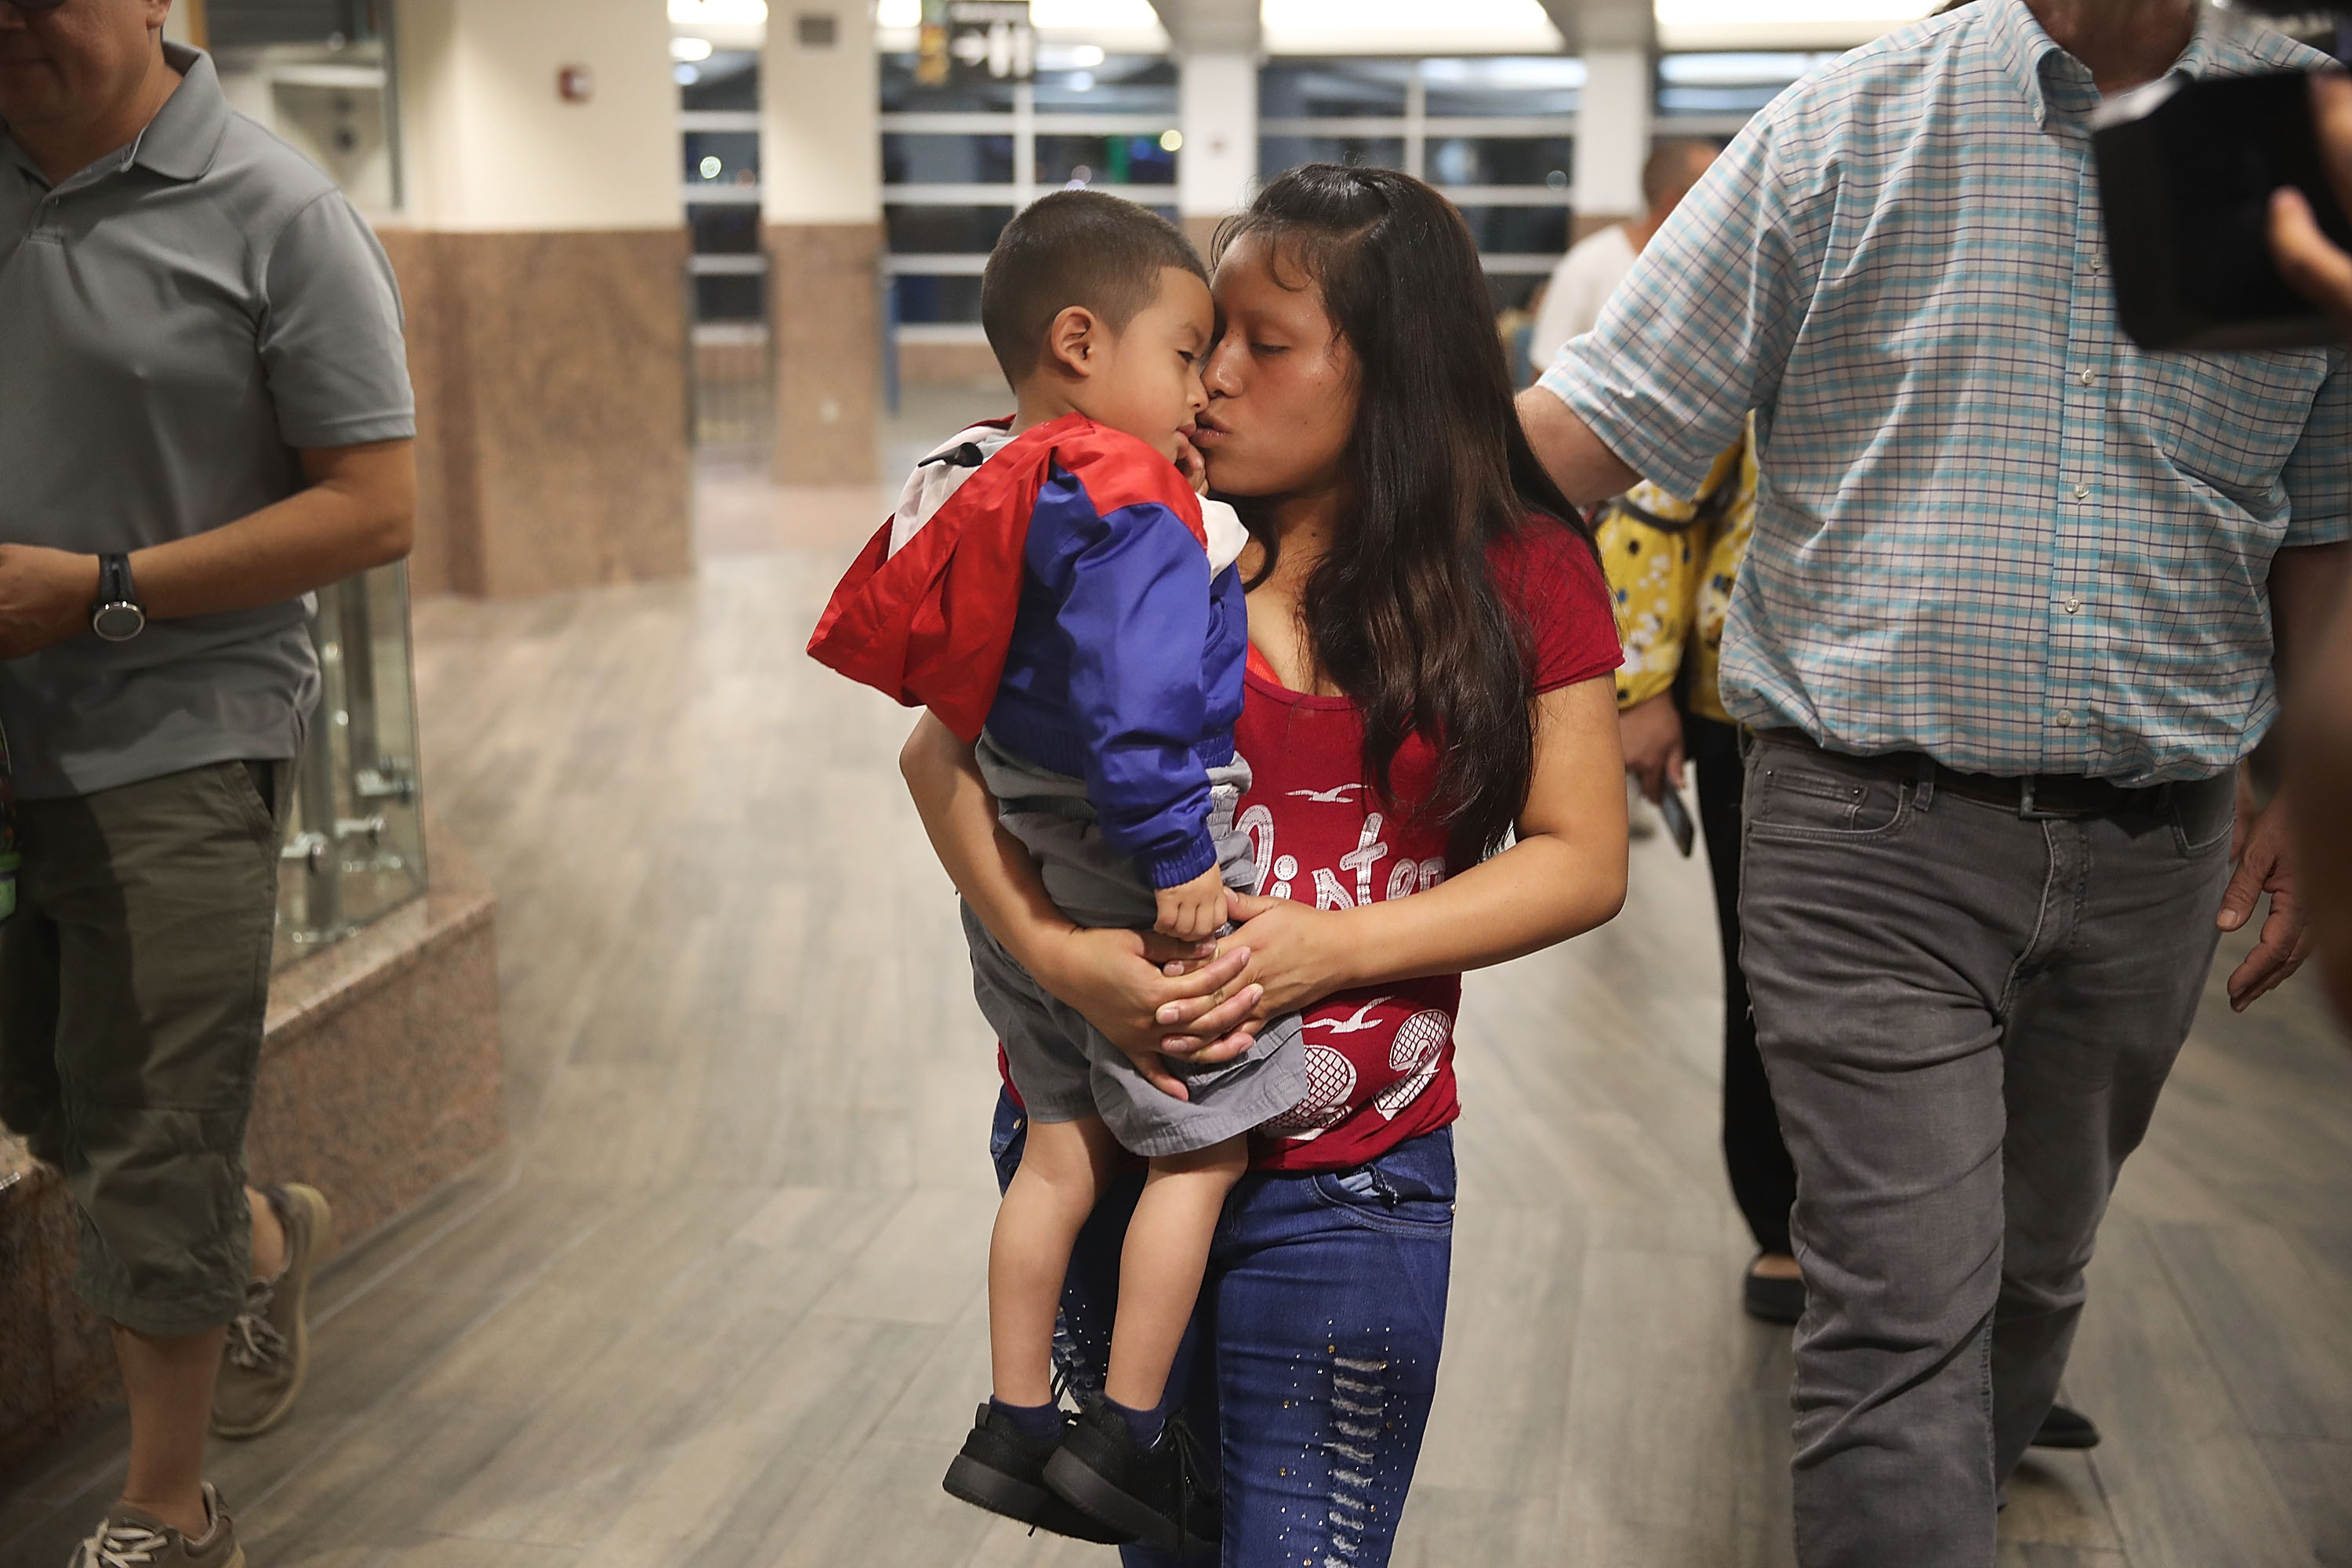 Your questions about the family separation crisis at the border, answered